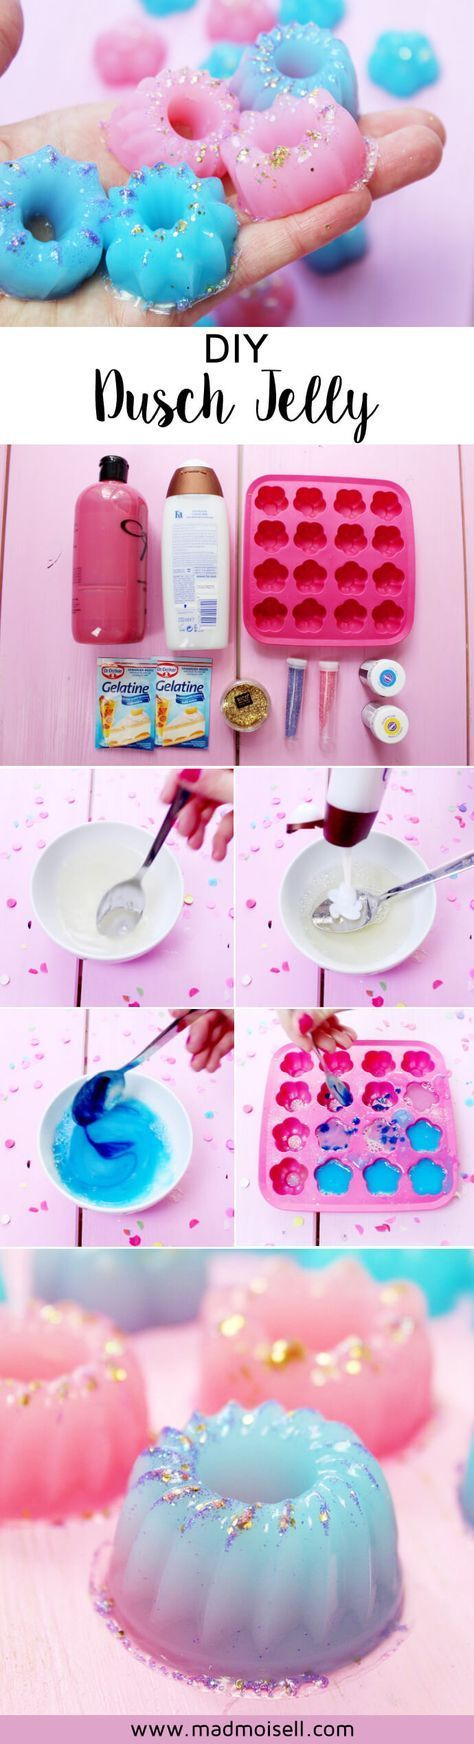 Make DIY Shower Jelly in the Lush Style – Simple Instructions!